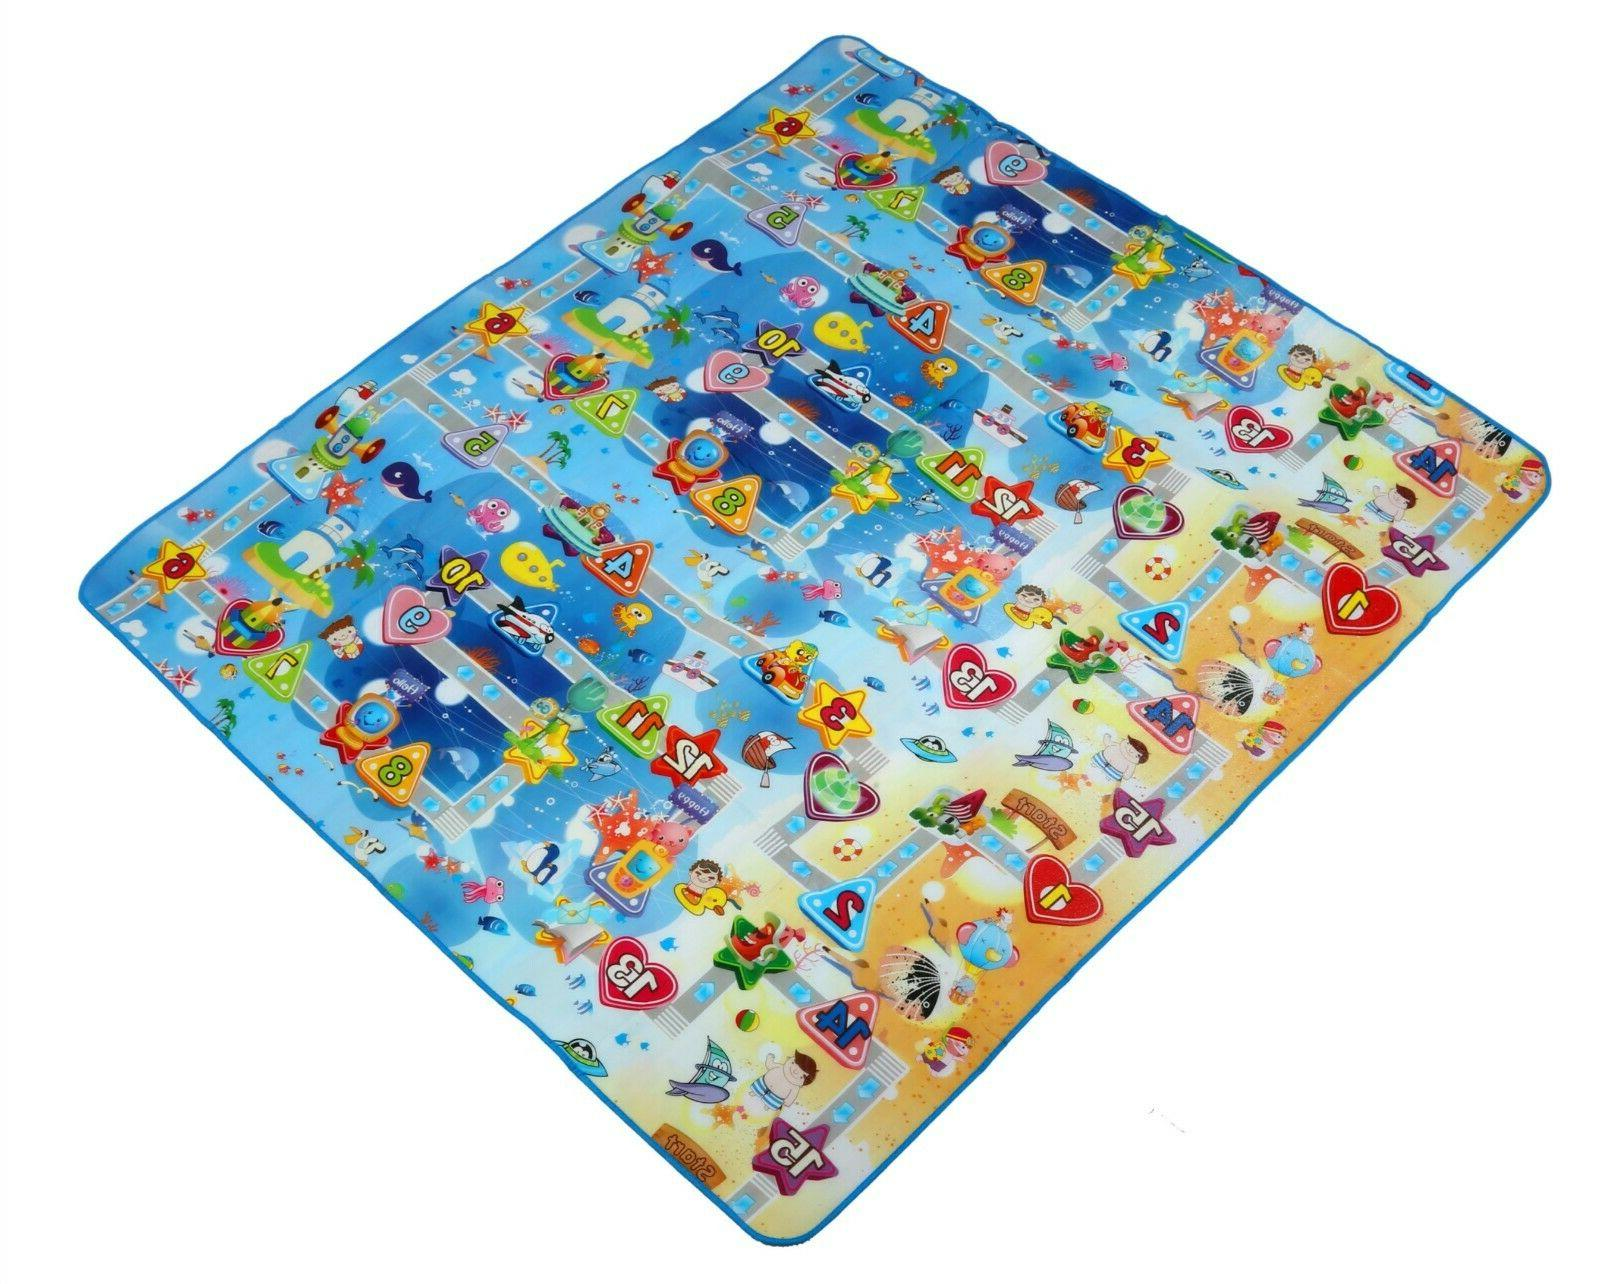 Reversible Activity Baby and Play Mat Game